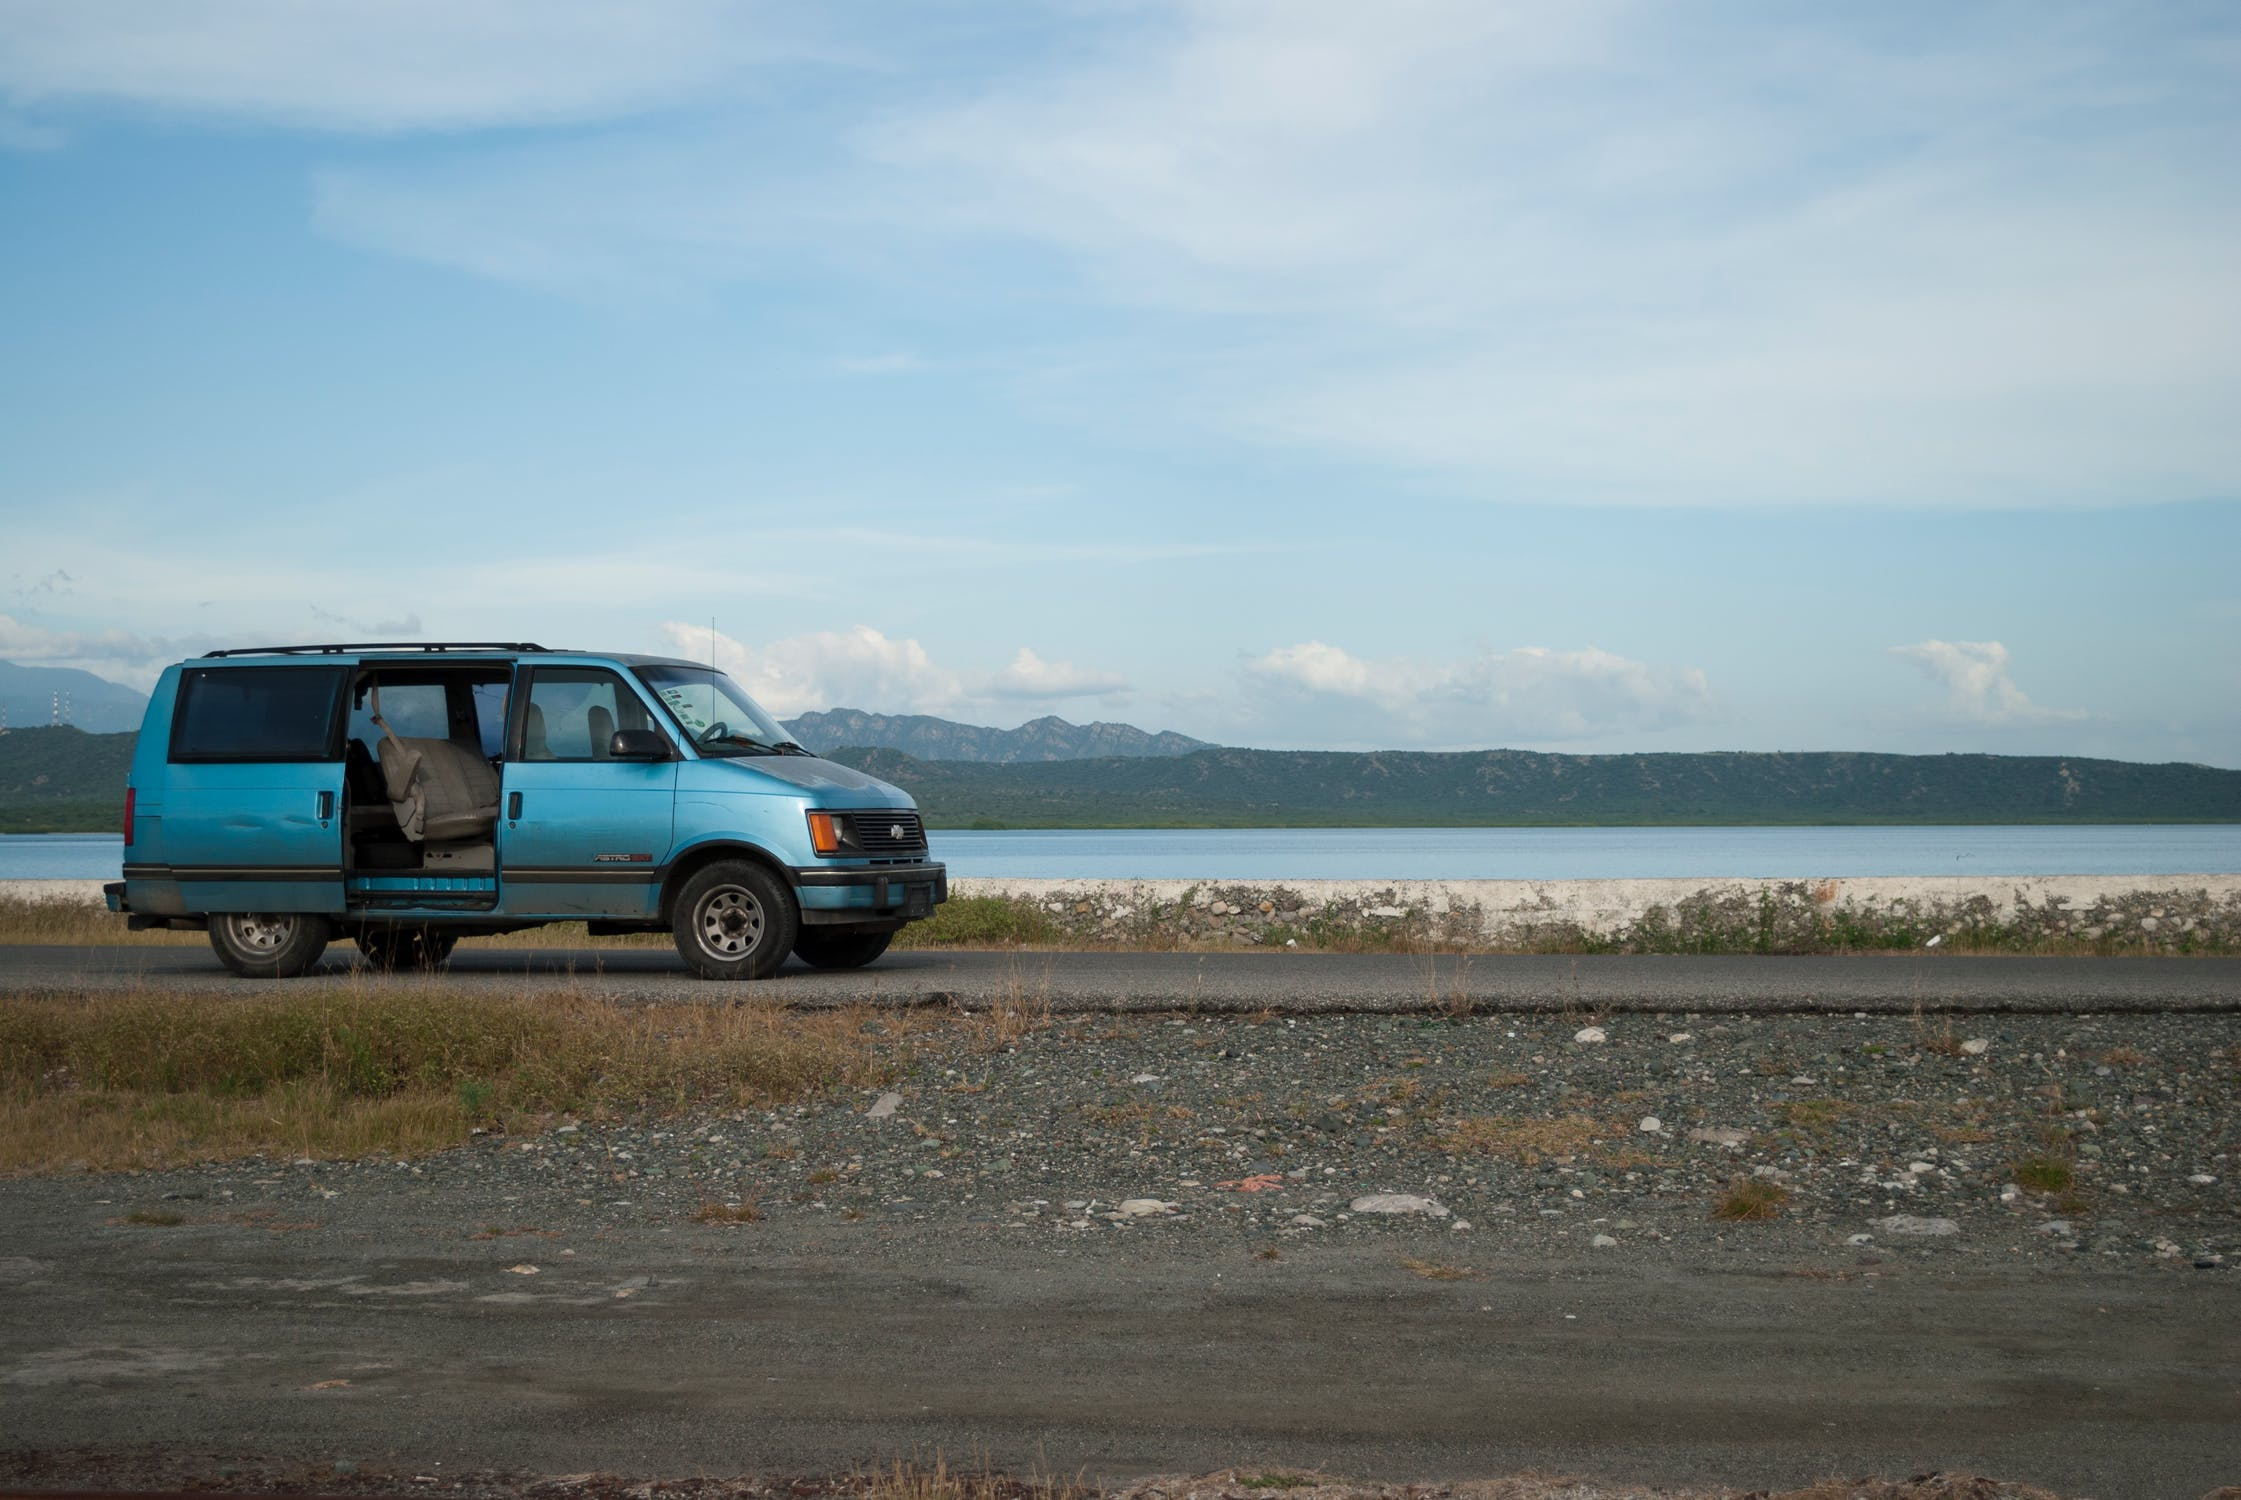 A road trip van without any gear packing